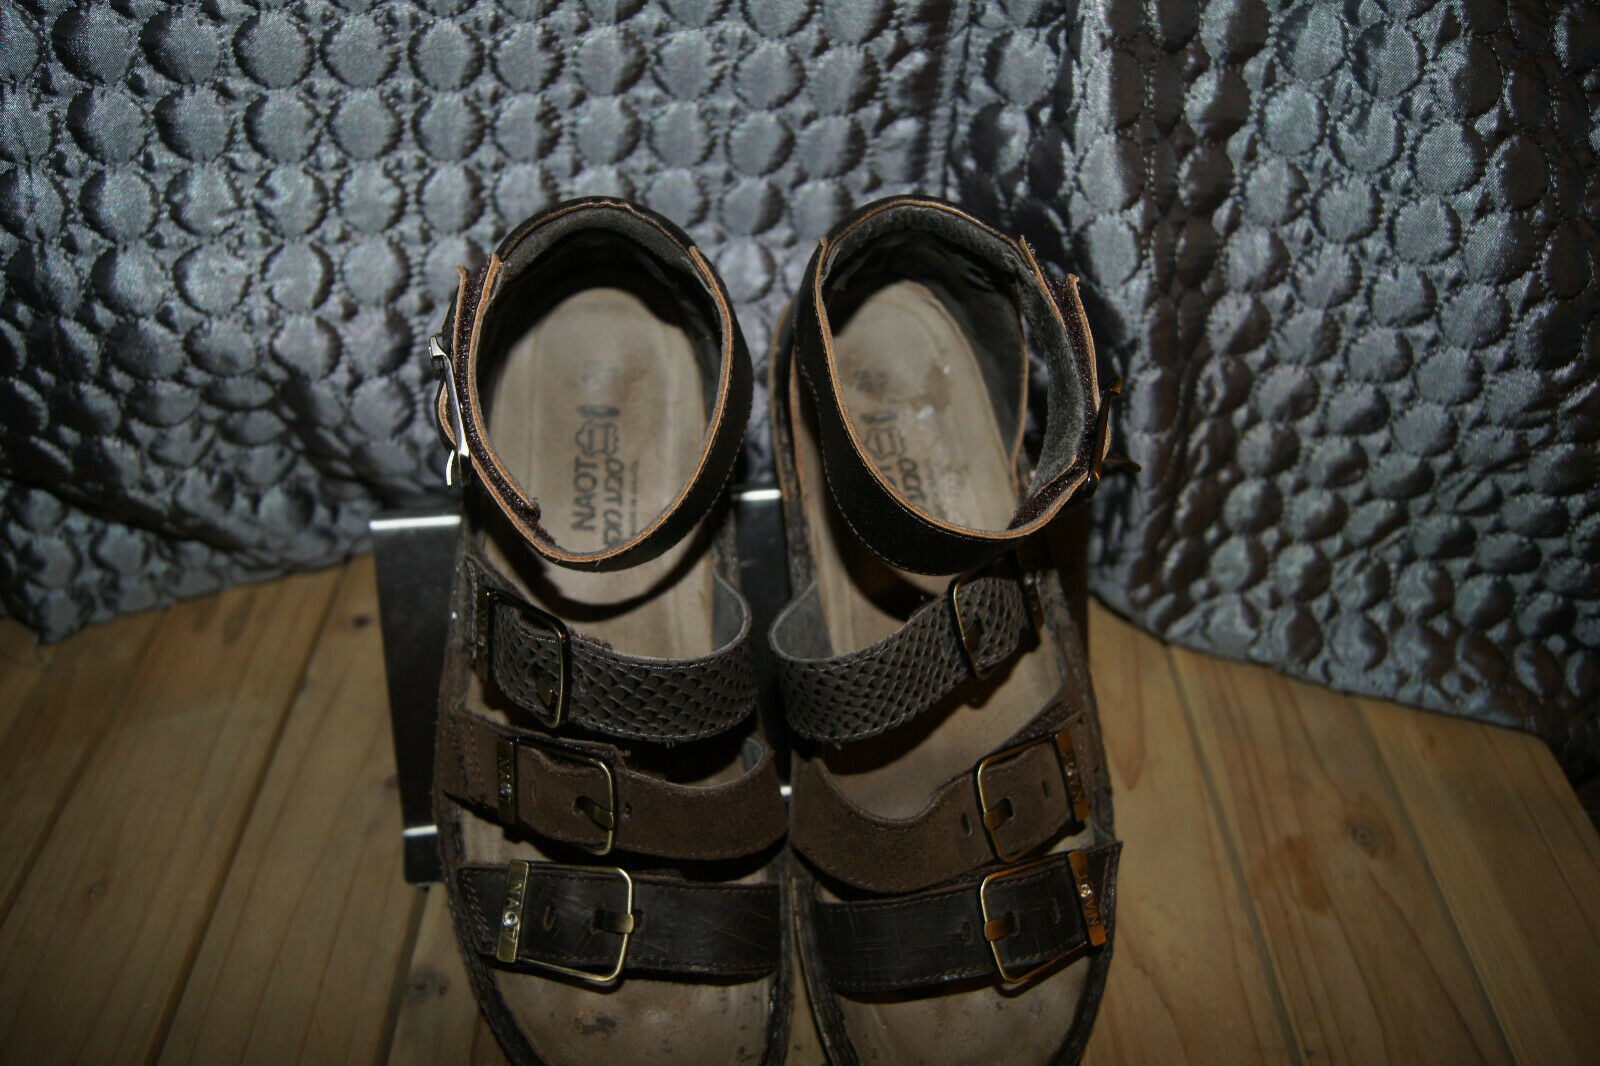 Naot SHOES 8 leather SANDALS 8 Size 39 (8) Comfor… - image 3